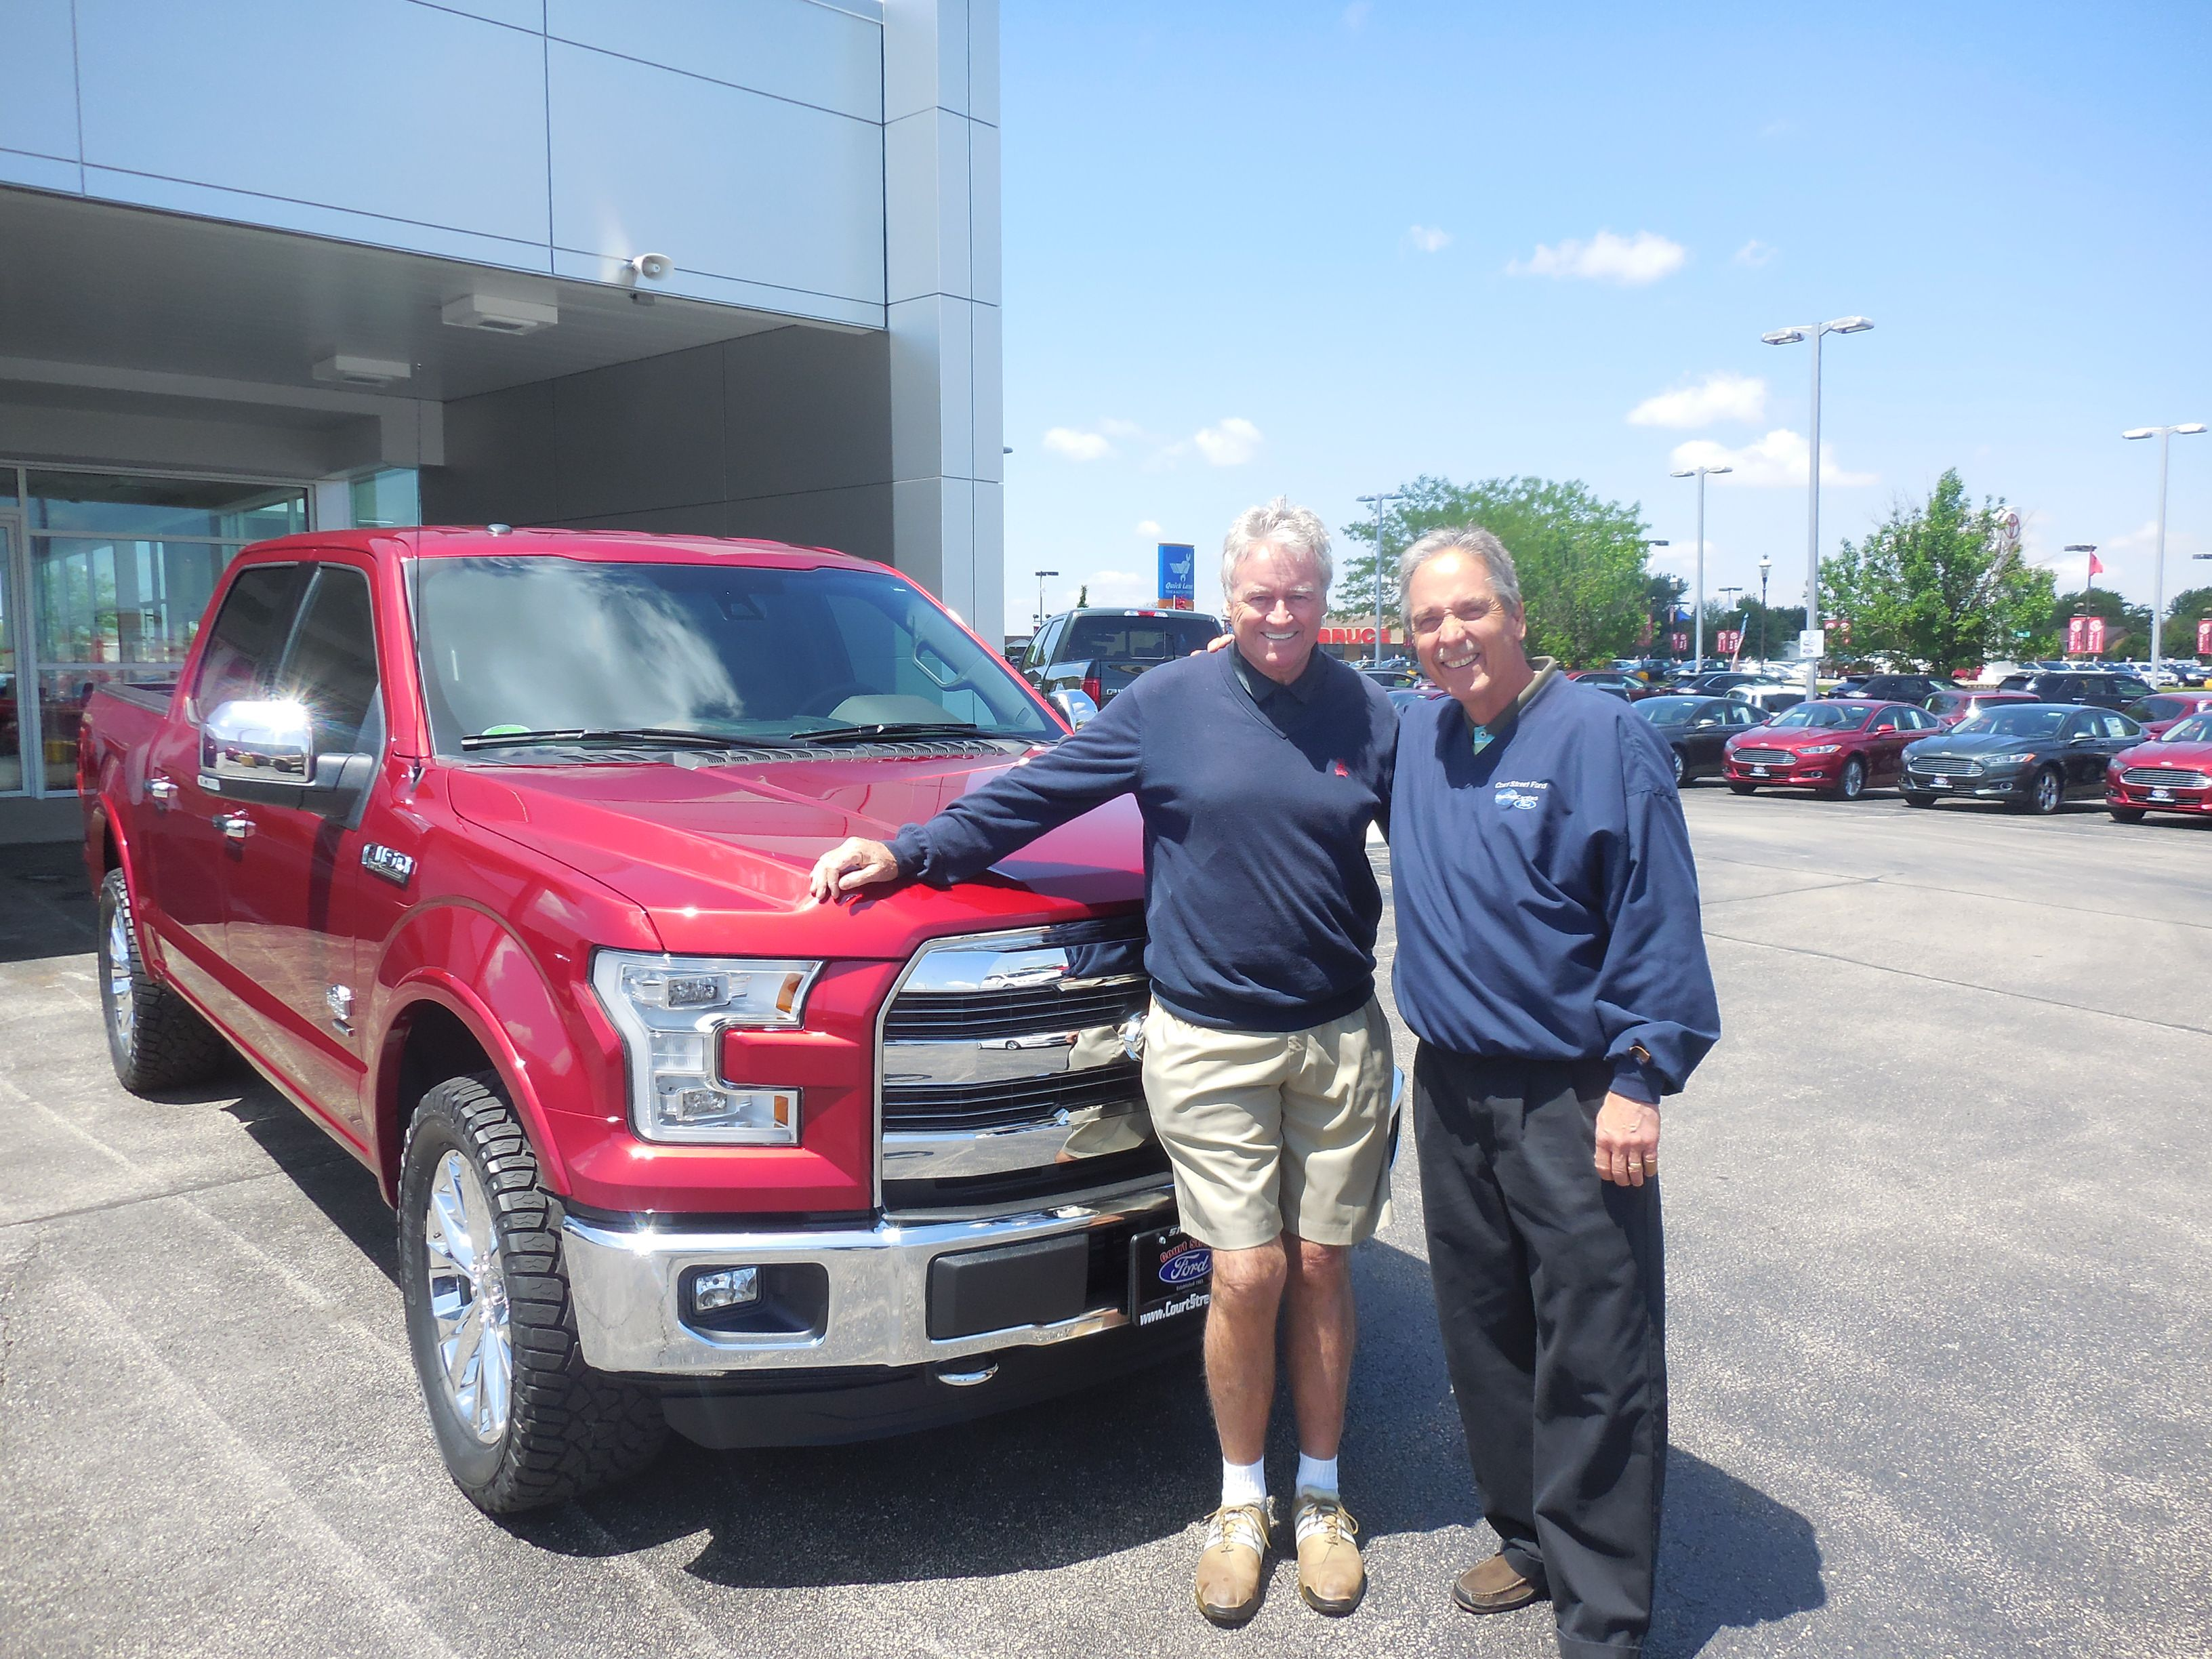 Ross Fleckenstein and the rest of us here at Court Street Ford would